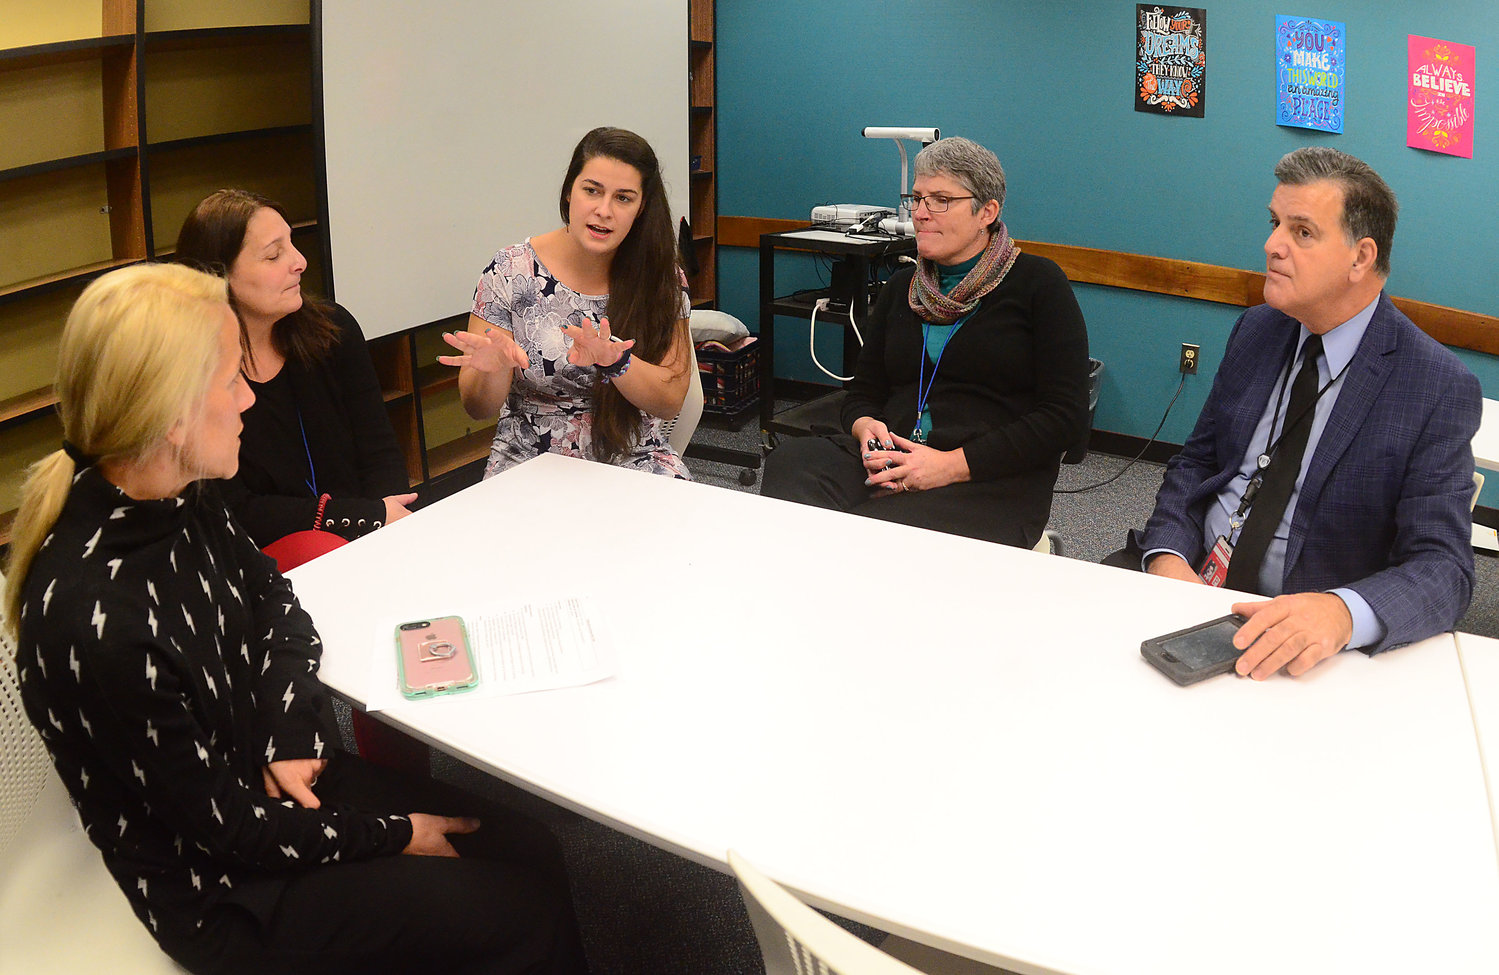 Discussing tech integration at the middle school recently are (from left) Nicole L'Etoile of Rhode Island Association of School Principals; Michelle Michno, Portsmouth Middle School support specialist; Sarah DelSanto, PMS tech integration specialist; and Joao Arruda, PMS principal.